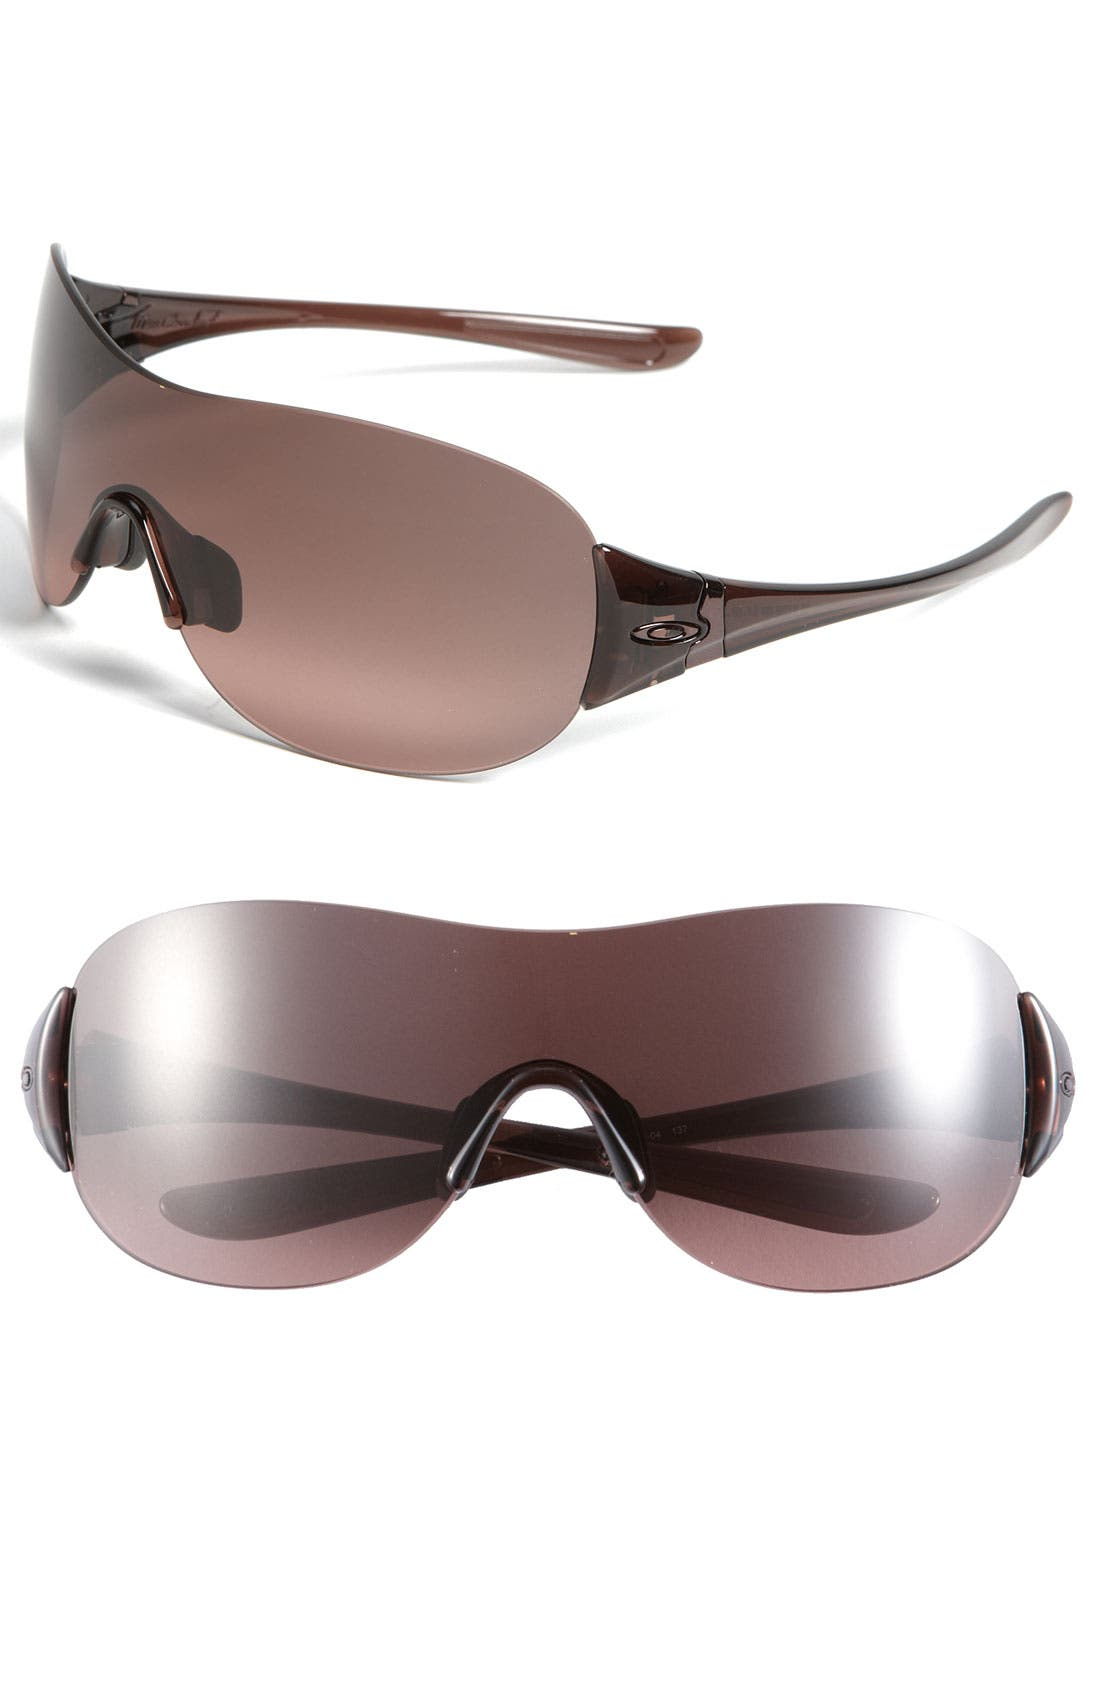 Main Image - Oakley 'Miss Conduct™' Rimless Shield Sunglasses